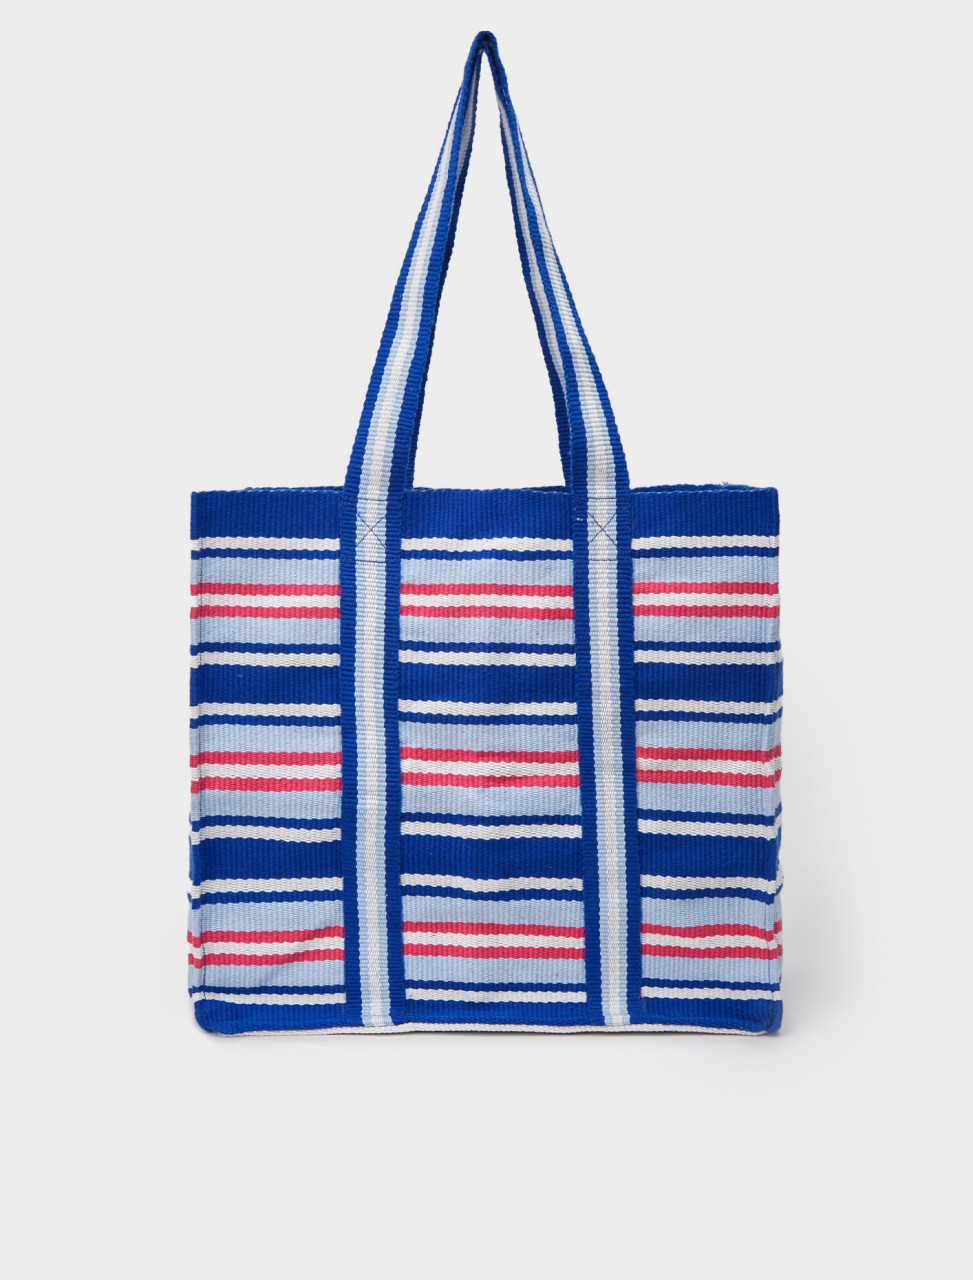 B01INT-B DNI TOTE BAG BLUE RED